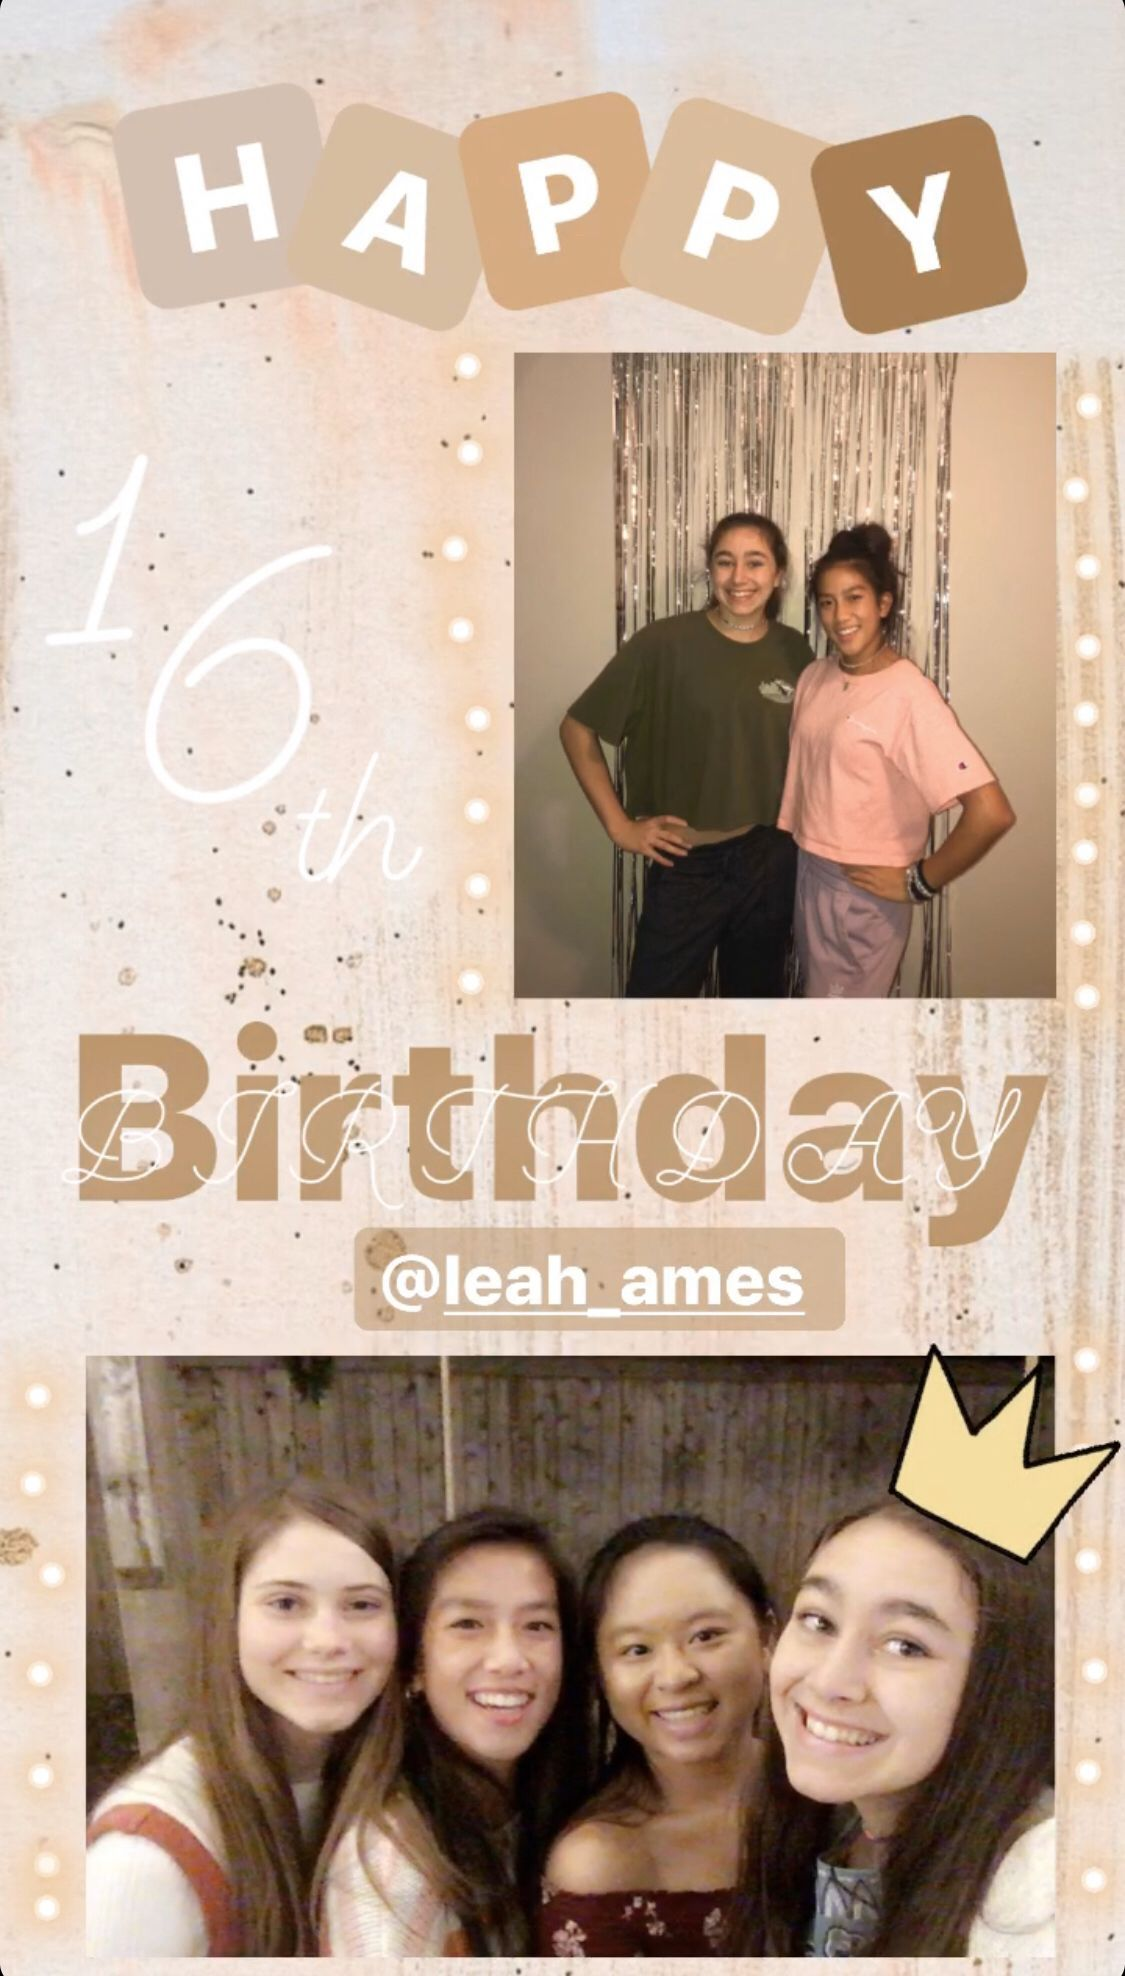 Super easy way to wish your friends happy birthday on